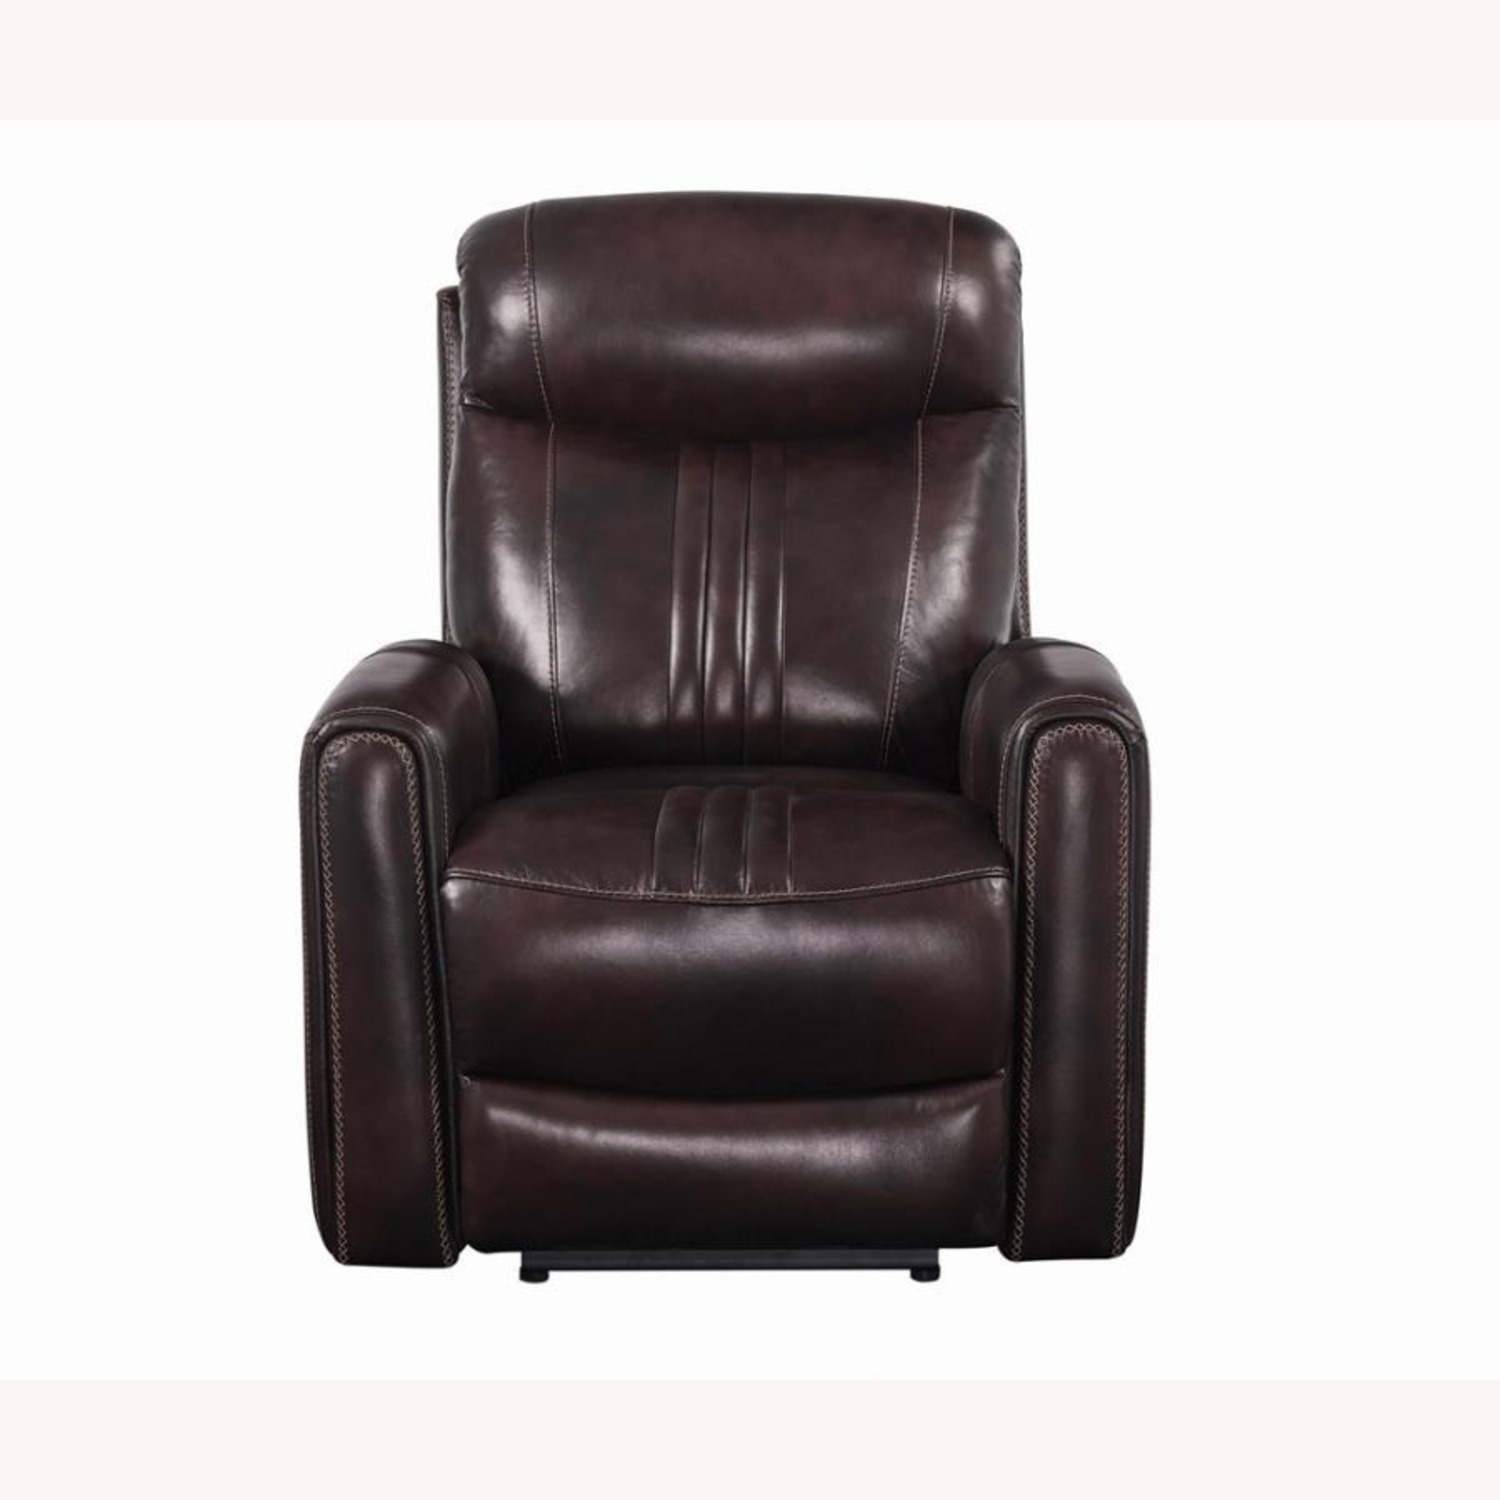 Modern Power Recliner In Brown Top Grain Leather - image-2